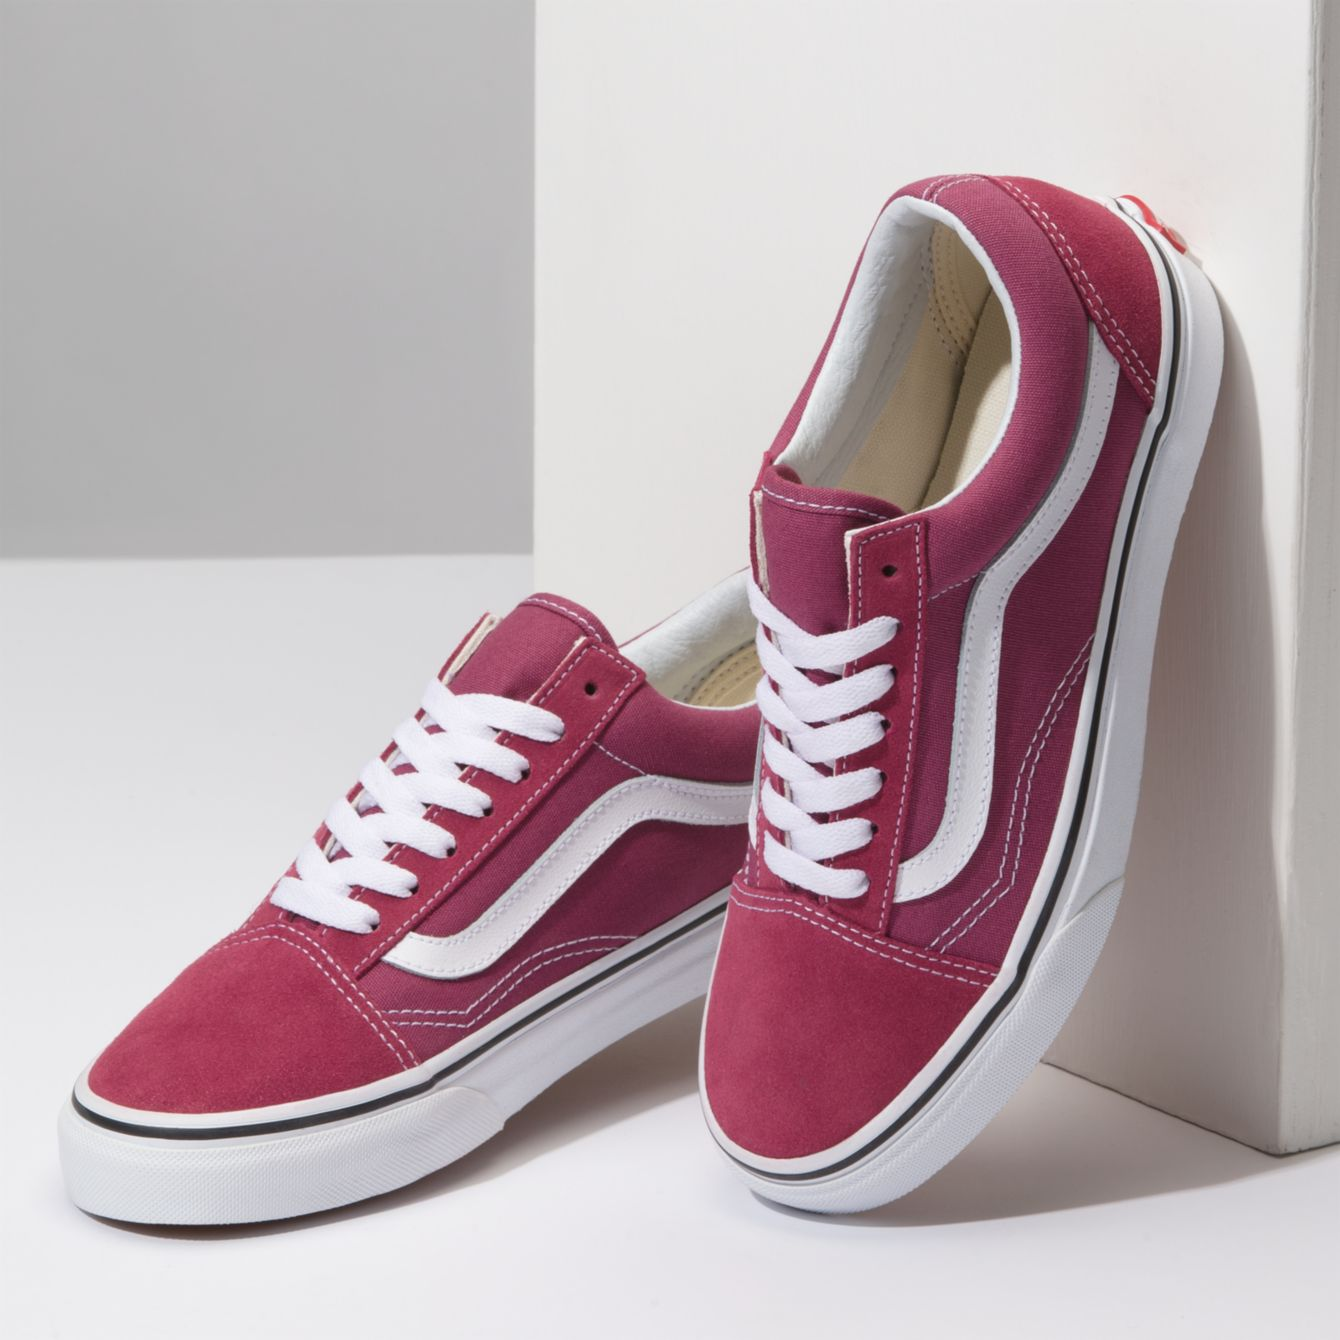 49b99842f81 Vans Old Skool Dry Rose True White